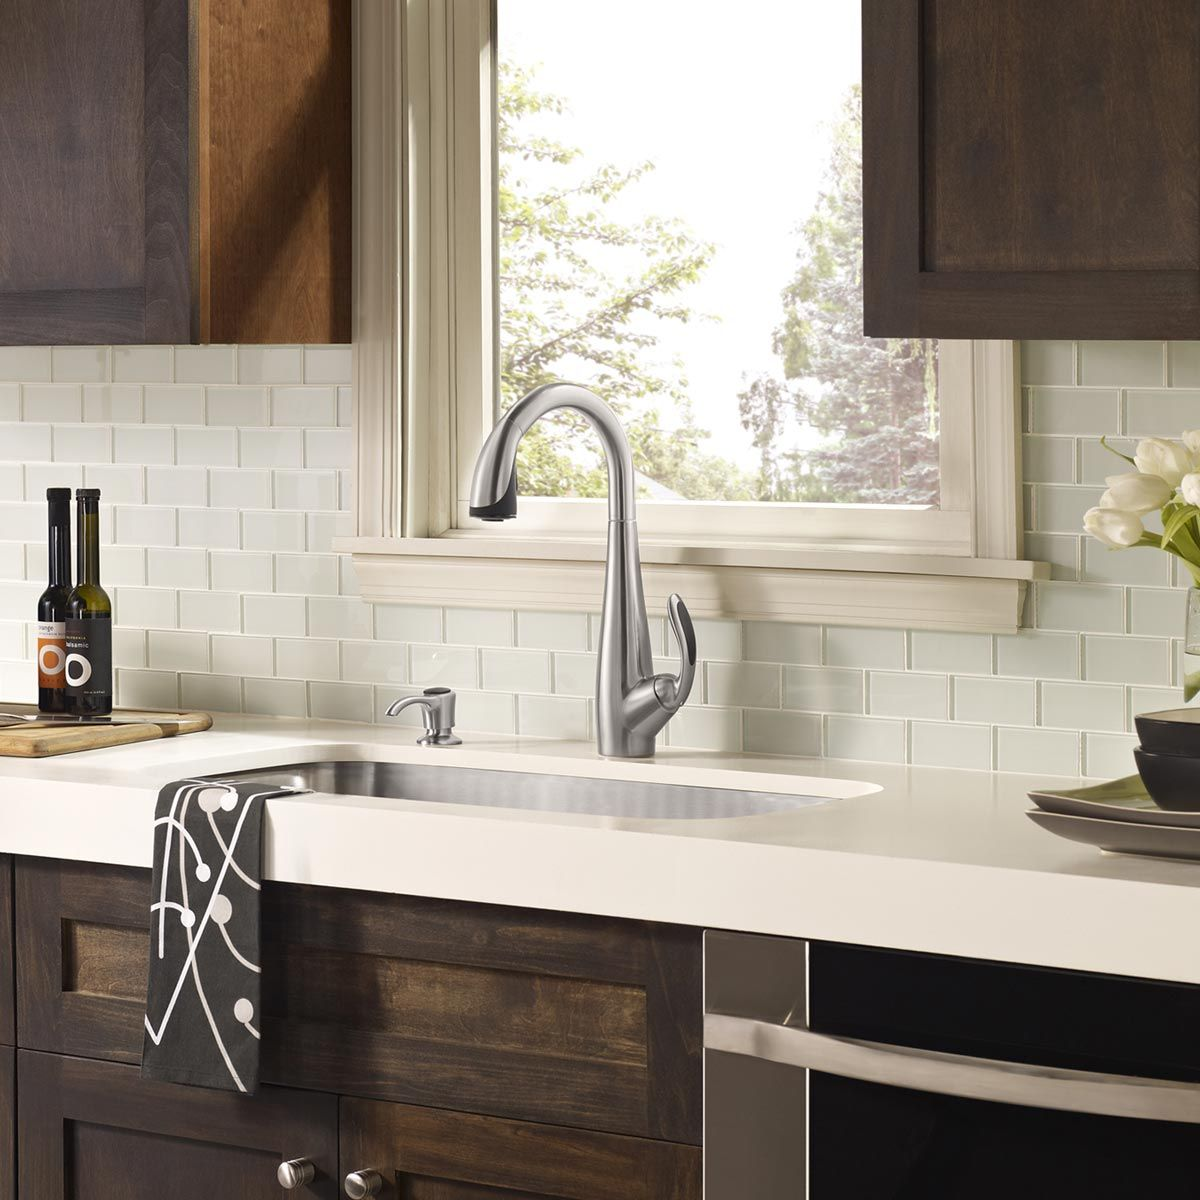 White Glass Tile Backsplash, White Countertop With Dark